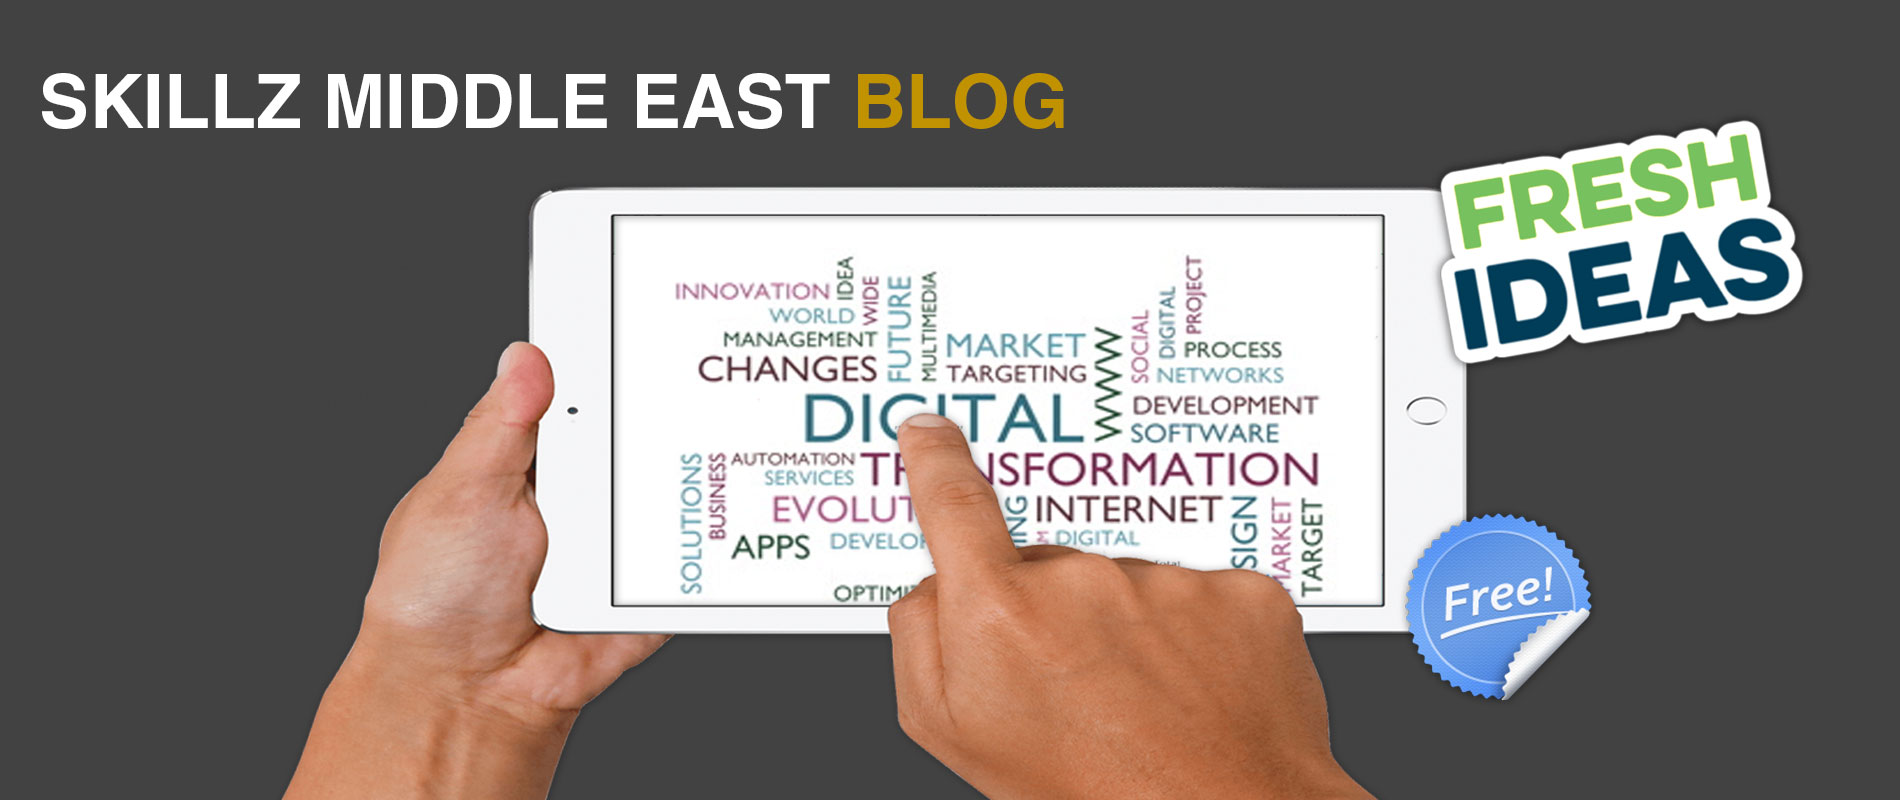 Skillz Blog - The Digital Transformation Blog of the Middle East